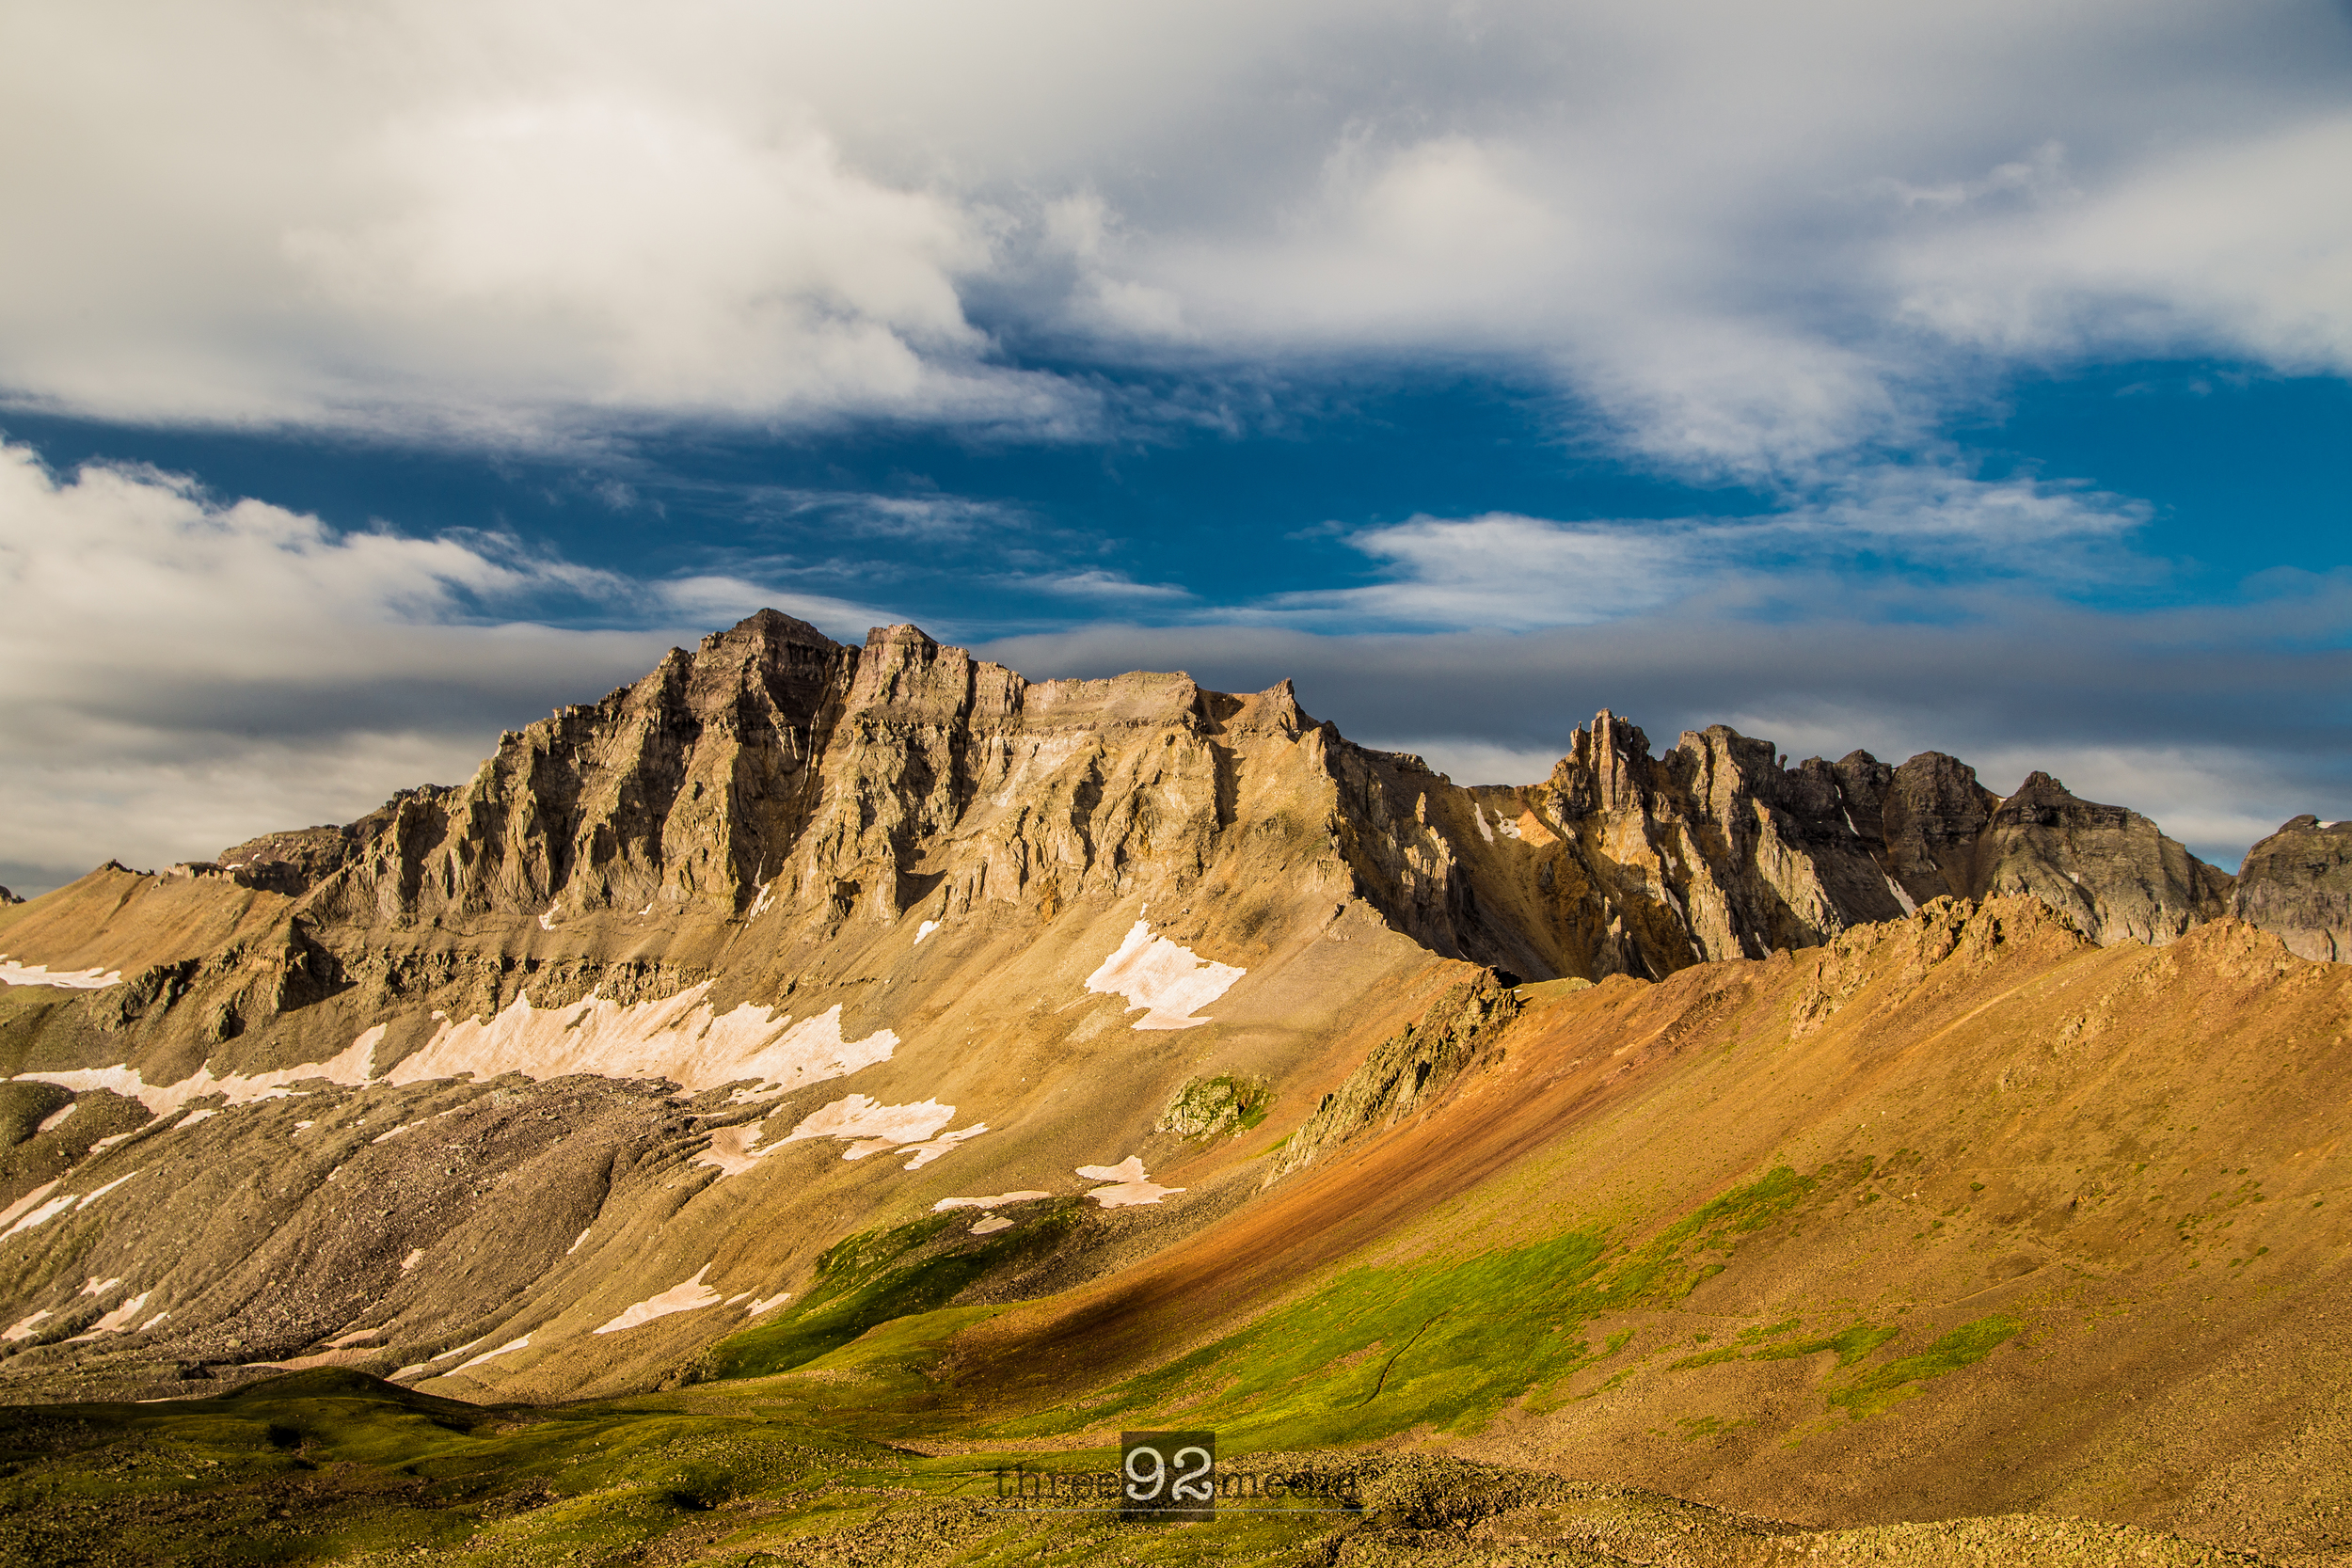 Epic Colorado Scenery; Captured First Hand